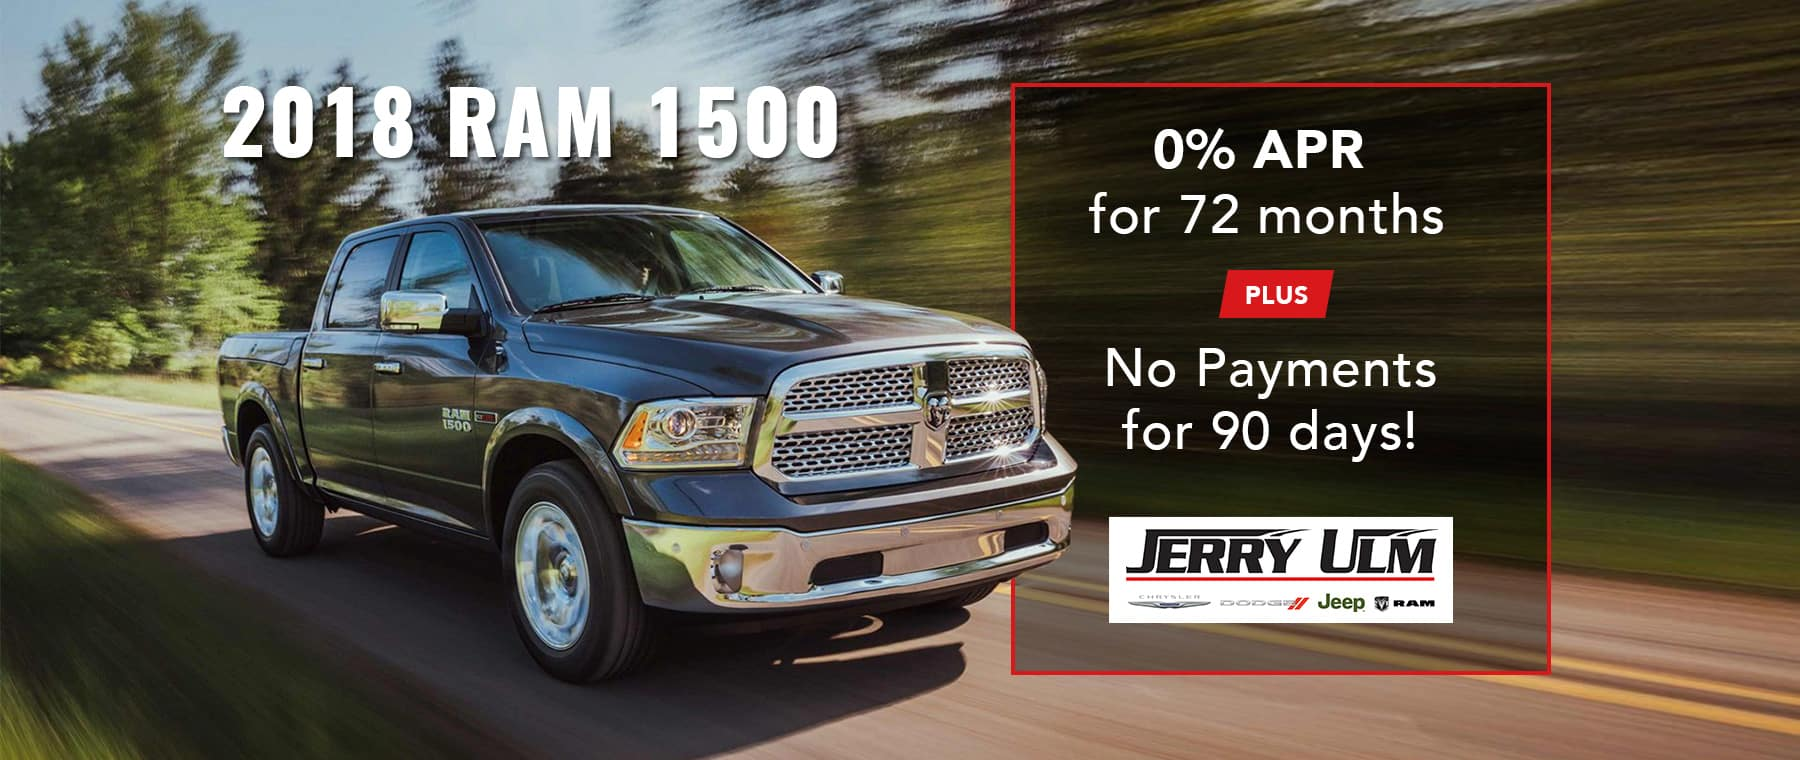 0% APR for 72 months plus no payments for 90 days on 2018 RAM 1500